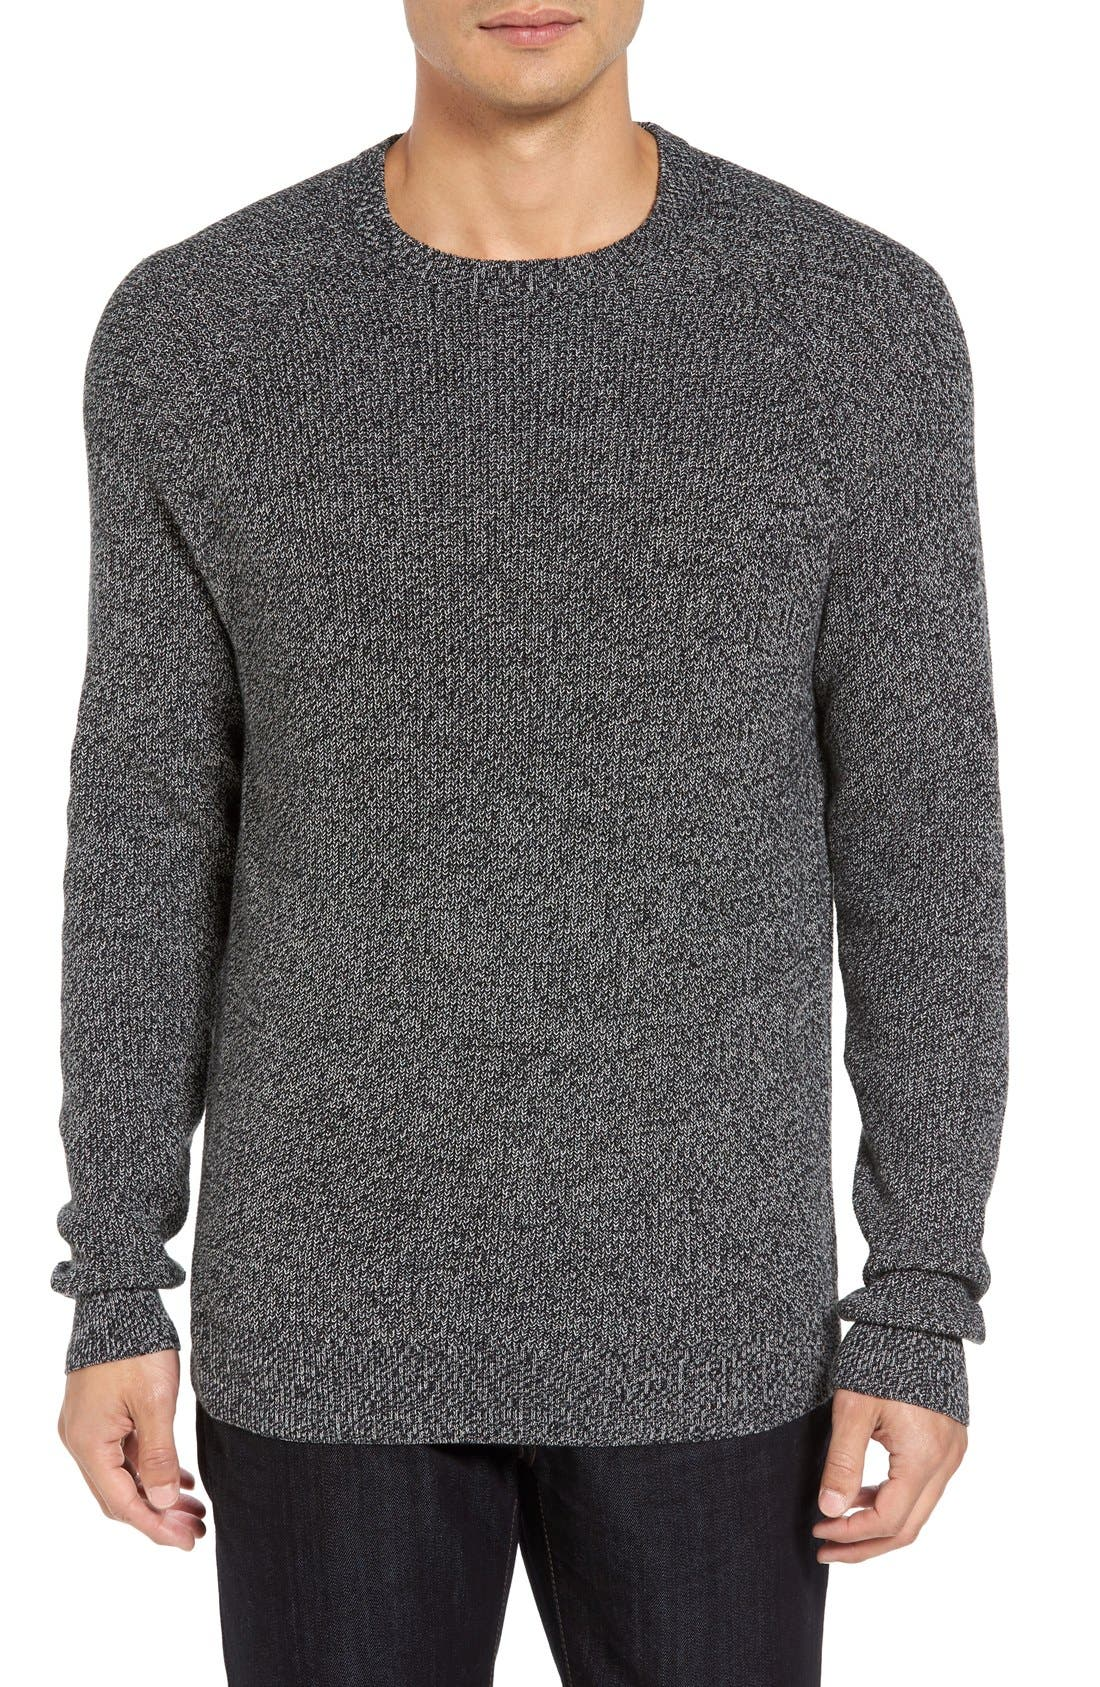 Nordstrom Men's Shop Crewneck Sweater (Regular)